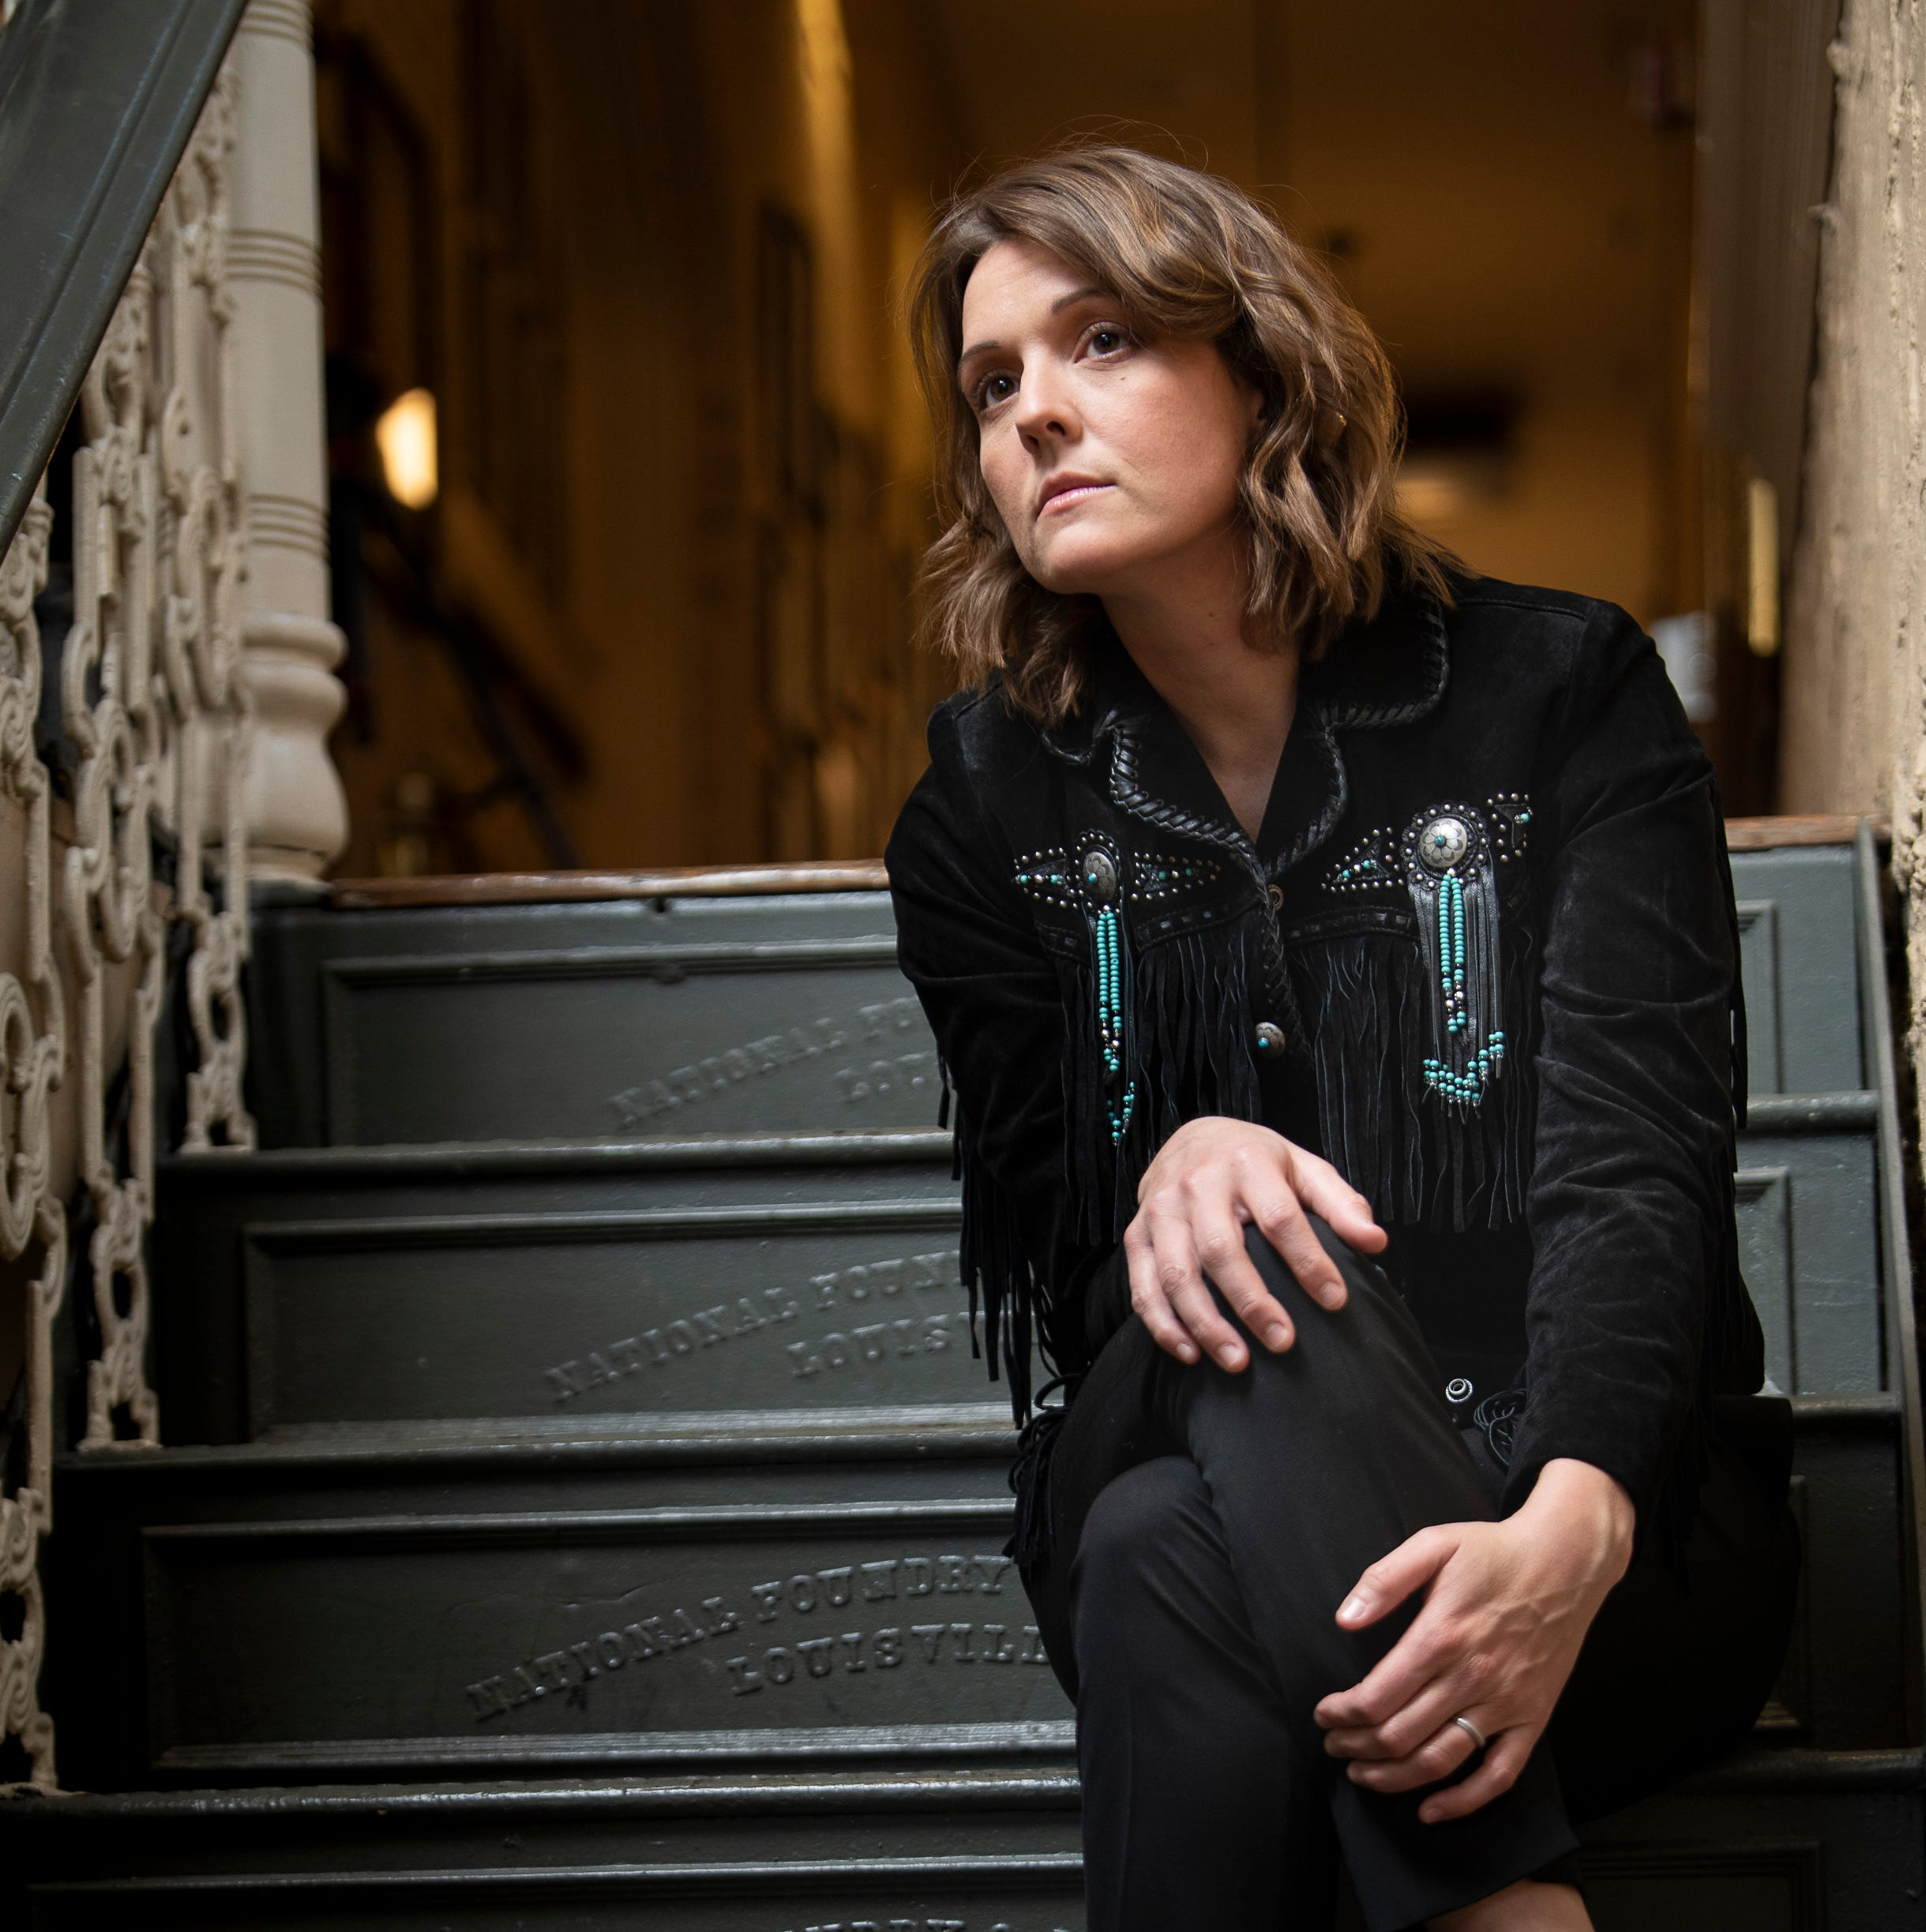 Brandi Carlile at the Ryman Auditorium Wednesday, April 3, 2019 in Nashville, Tenn..